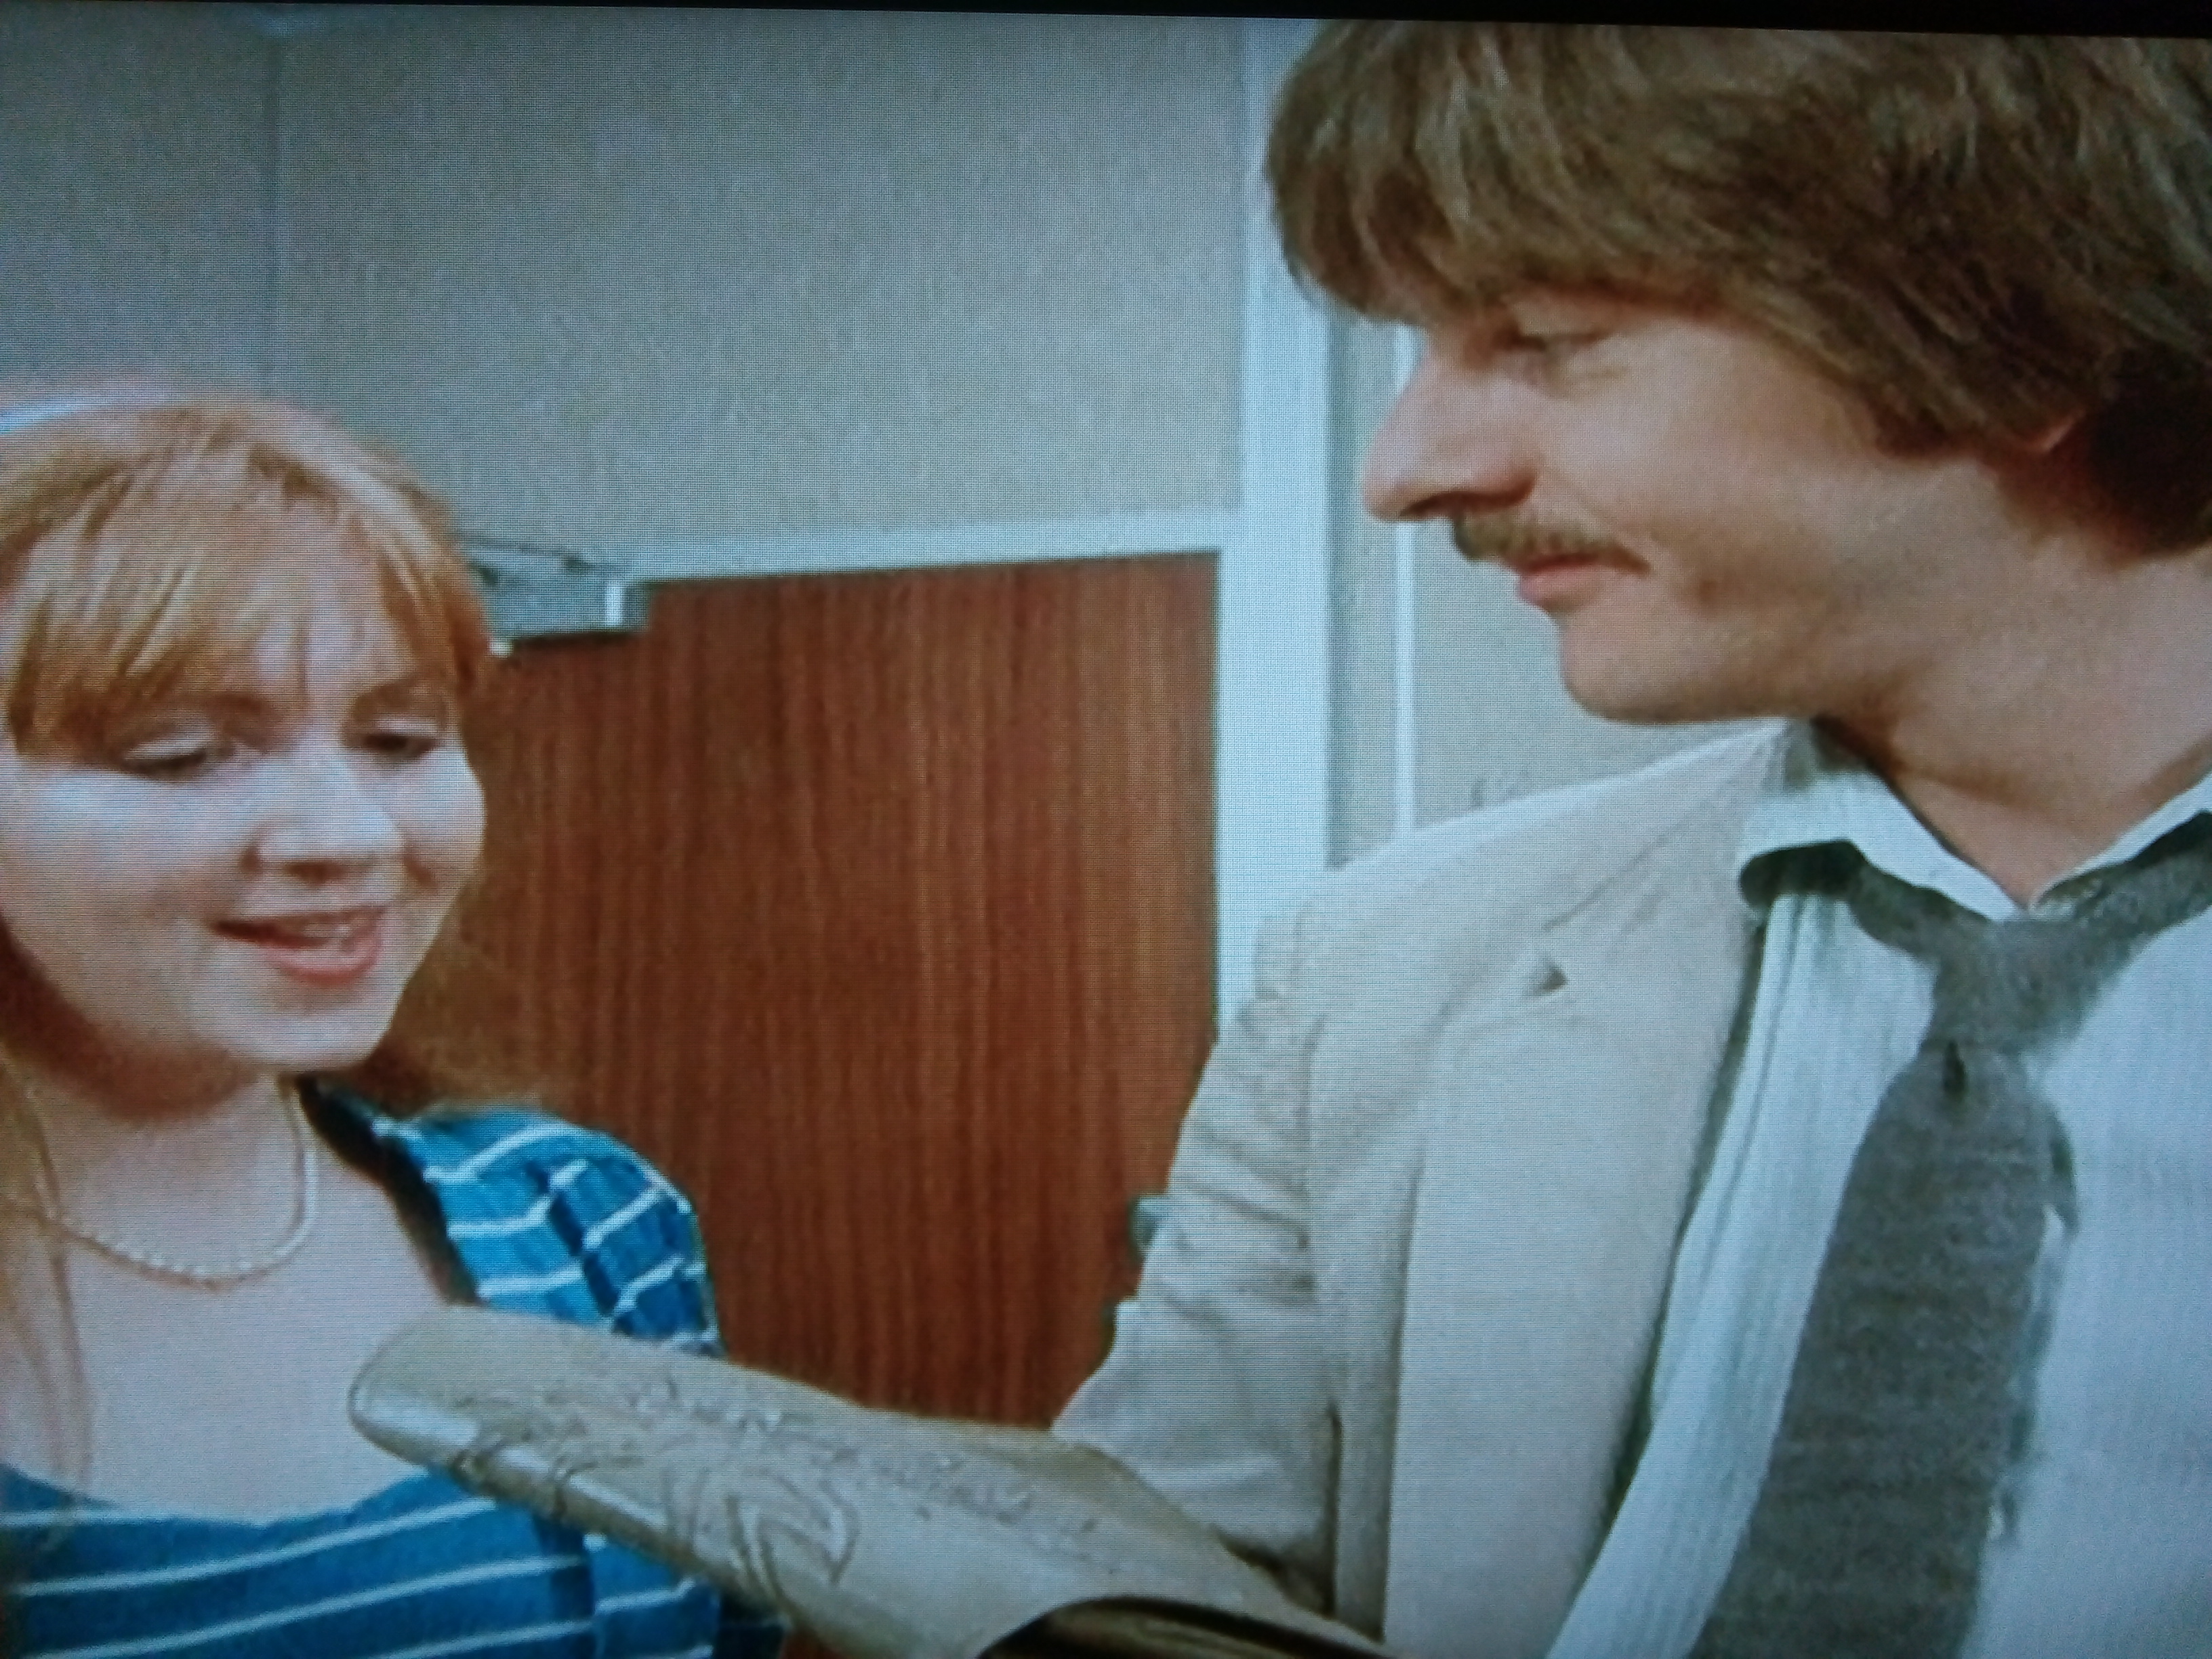 Liz Crowther and Trevor Eve in Shoestring (1979)